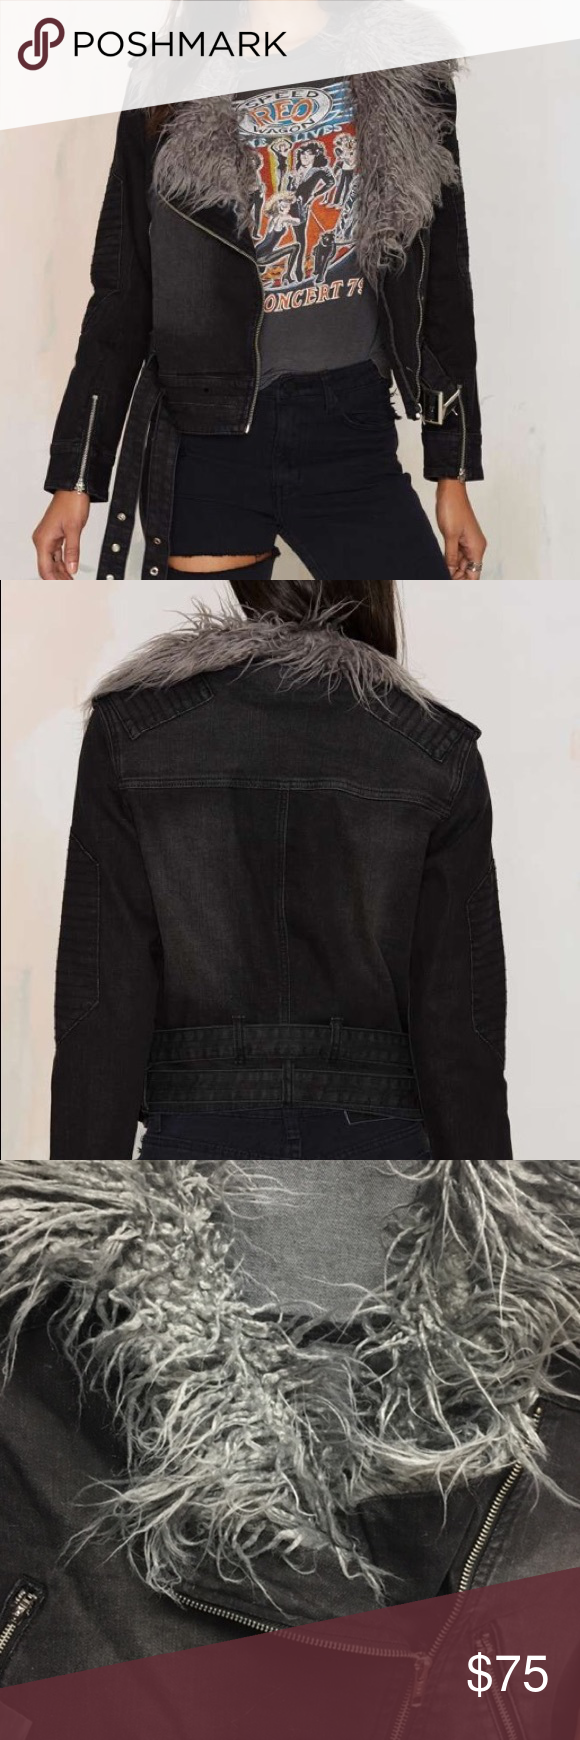 Somedays Lovin' Anita Denim Jacket (NWOT) Black/grey denim jacket with notched lapels, gray shag collar, asymmetric zip and moto detailing. Fits XS/S. Purchased from Nasty Gal, now sold out. Perfect condition. Nasty Gal Jackets & Coats